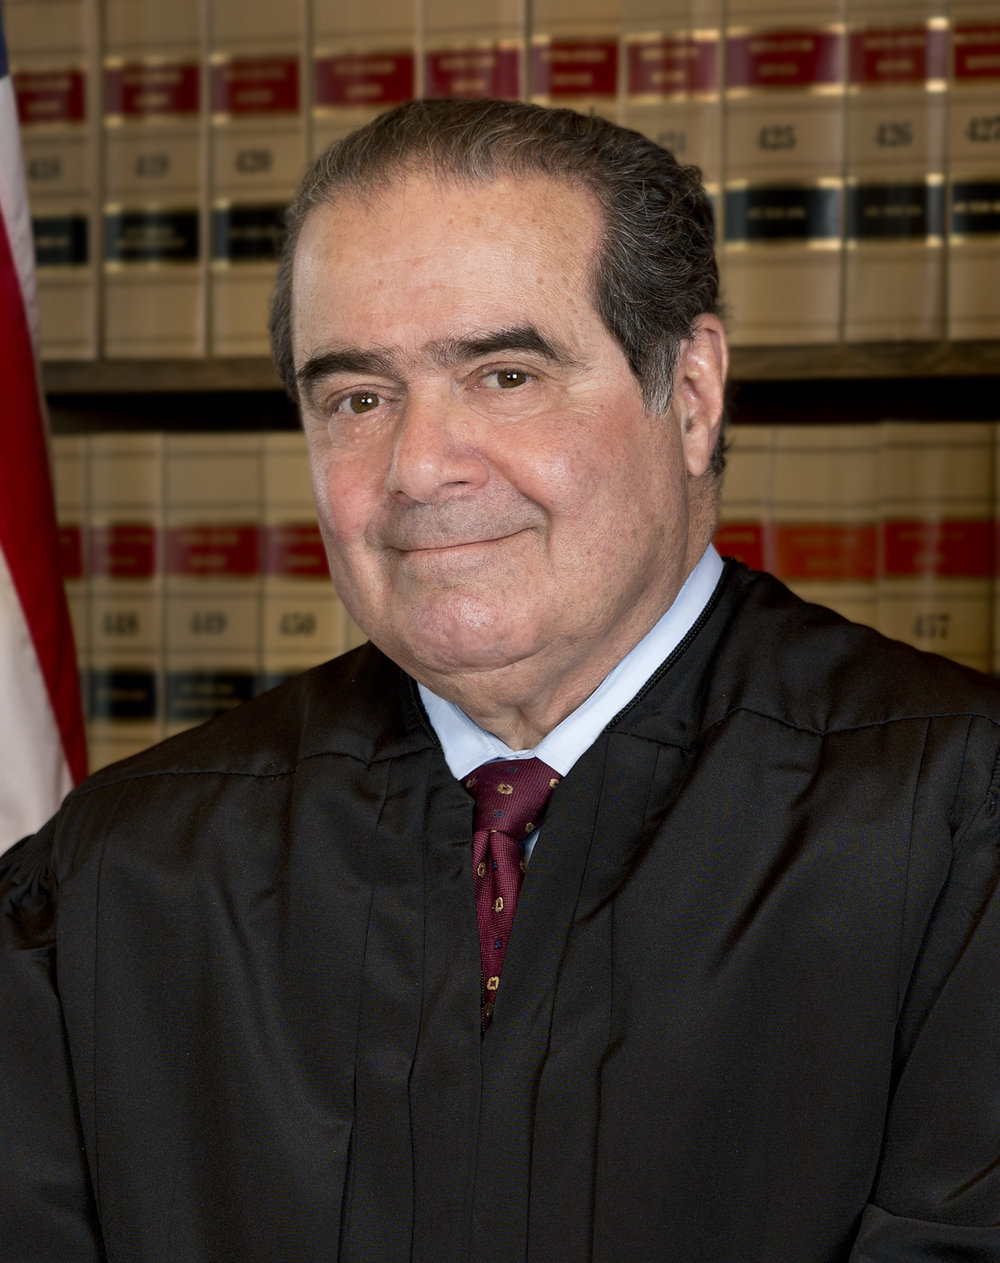 - Former Supreme Court Justice Antonin Scalia was nominated to the Supreme Court in 1986 by President Ronald Reagan and he was confirmed by the Senate by a vote of 98 to 0. Justice Scalia was a champion of originalism, the theory of constitutional interpretation that seeks to apply the understanding of those who drafted and ratified the Constitution. His death on February 13, 2017 may have been due to sleep apnea.       https://www.washingtonpost.com/news/to-your-health/wp/2016/02/24/scalia-may-have-forgotten-to-hook-himself-up-to-sleep-apnea-machine-why-that-can-be-dangerous/?utm_term=.3891eba4a345